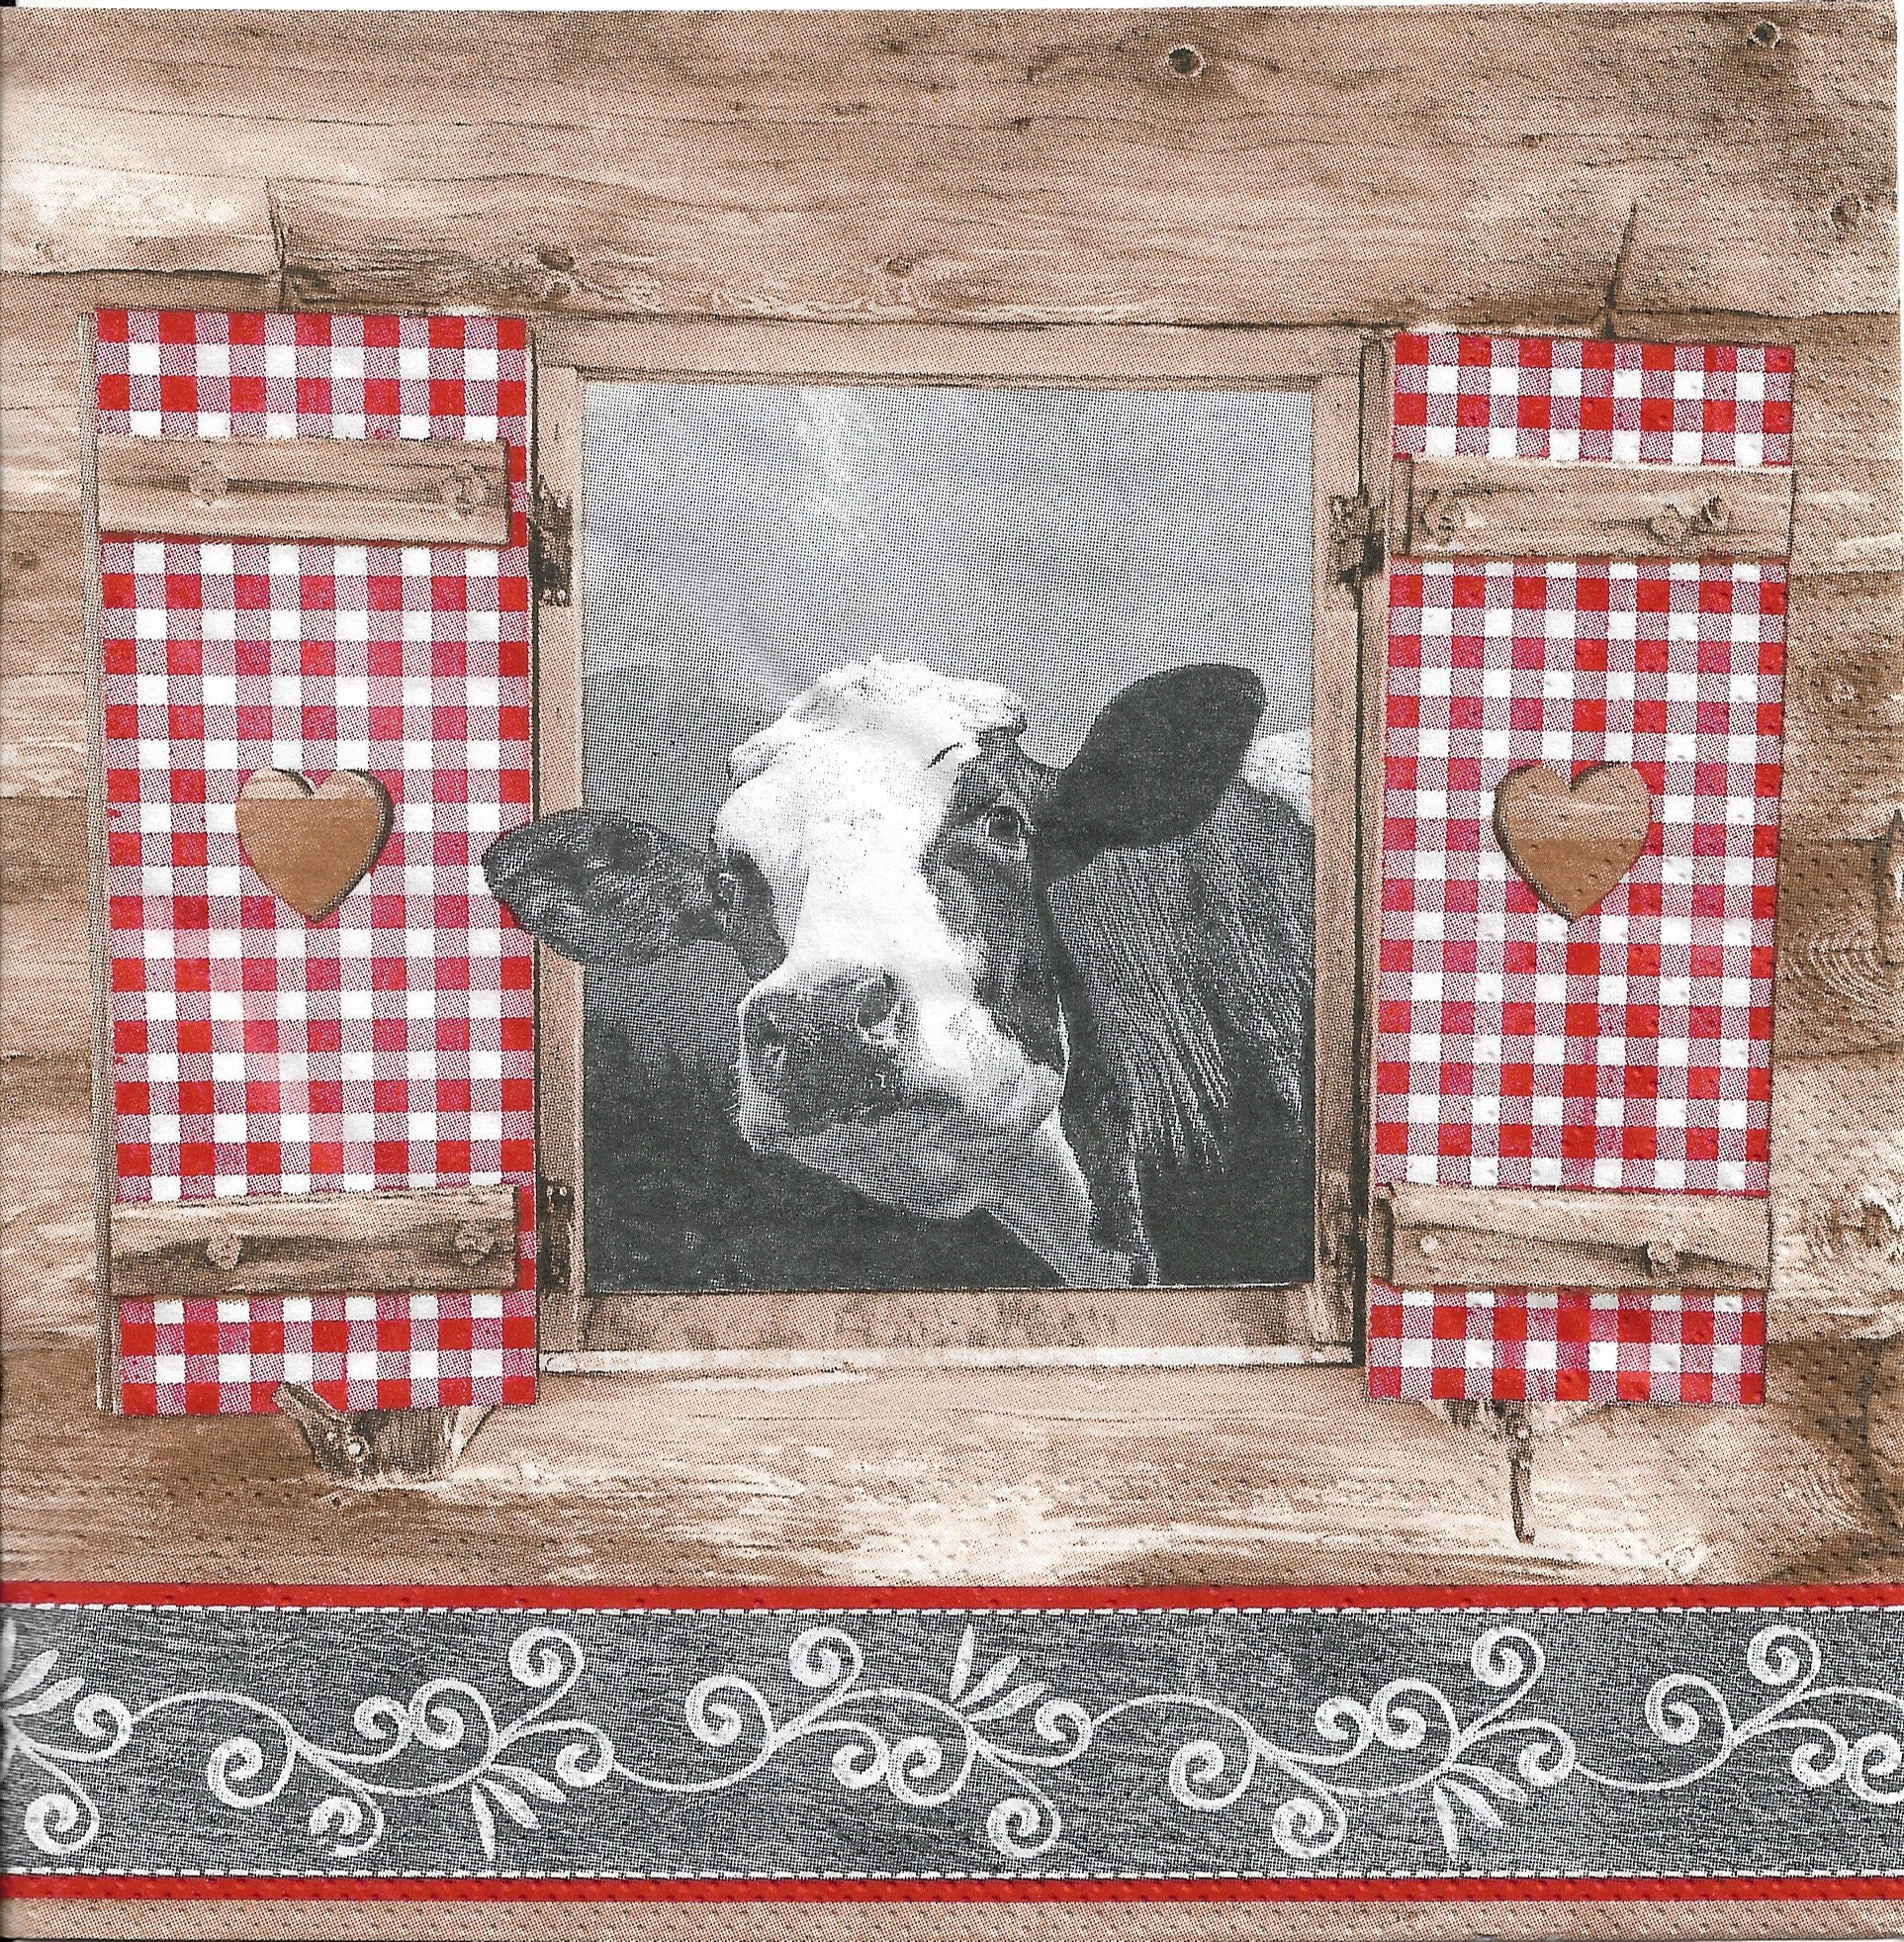 5 Serviettes en papier Vache des des Vache Alpes 83953 pour Decoupage Collage Decopatch c805ee